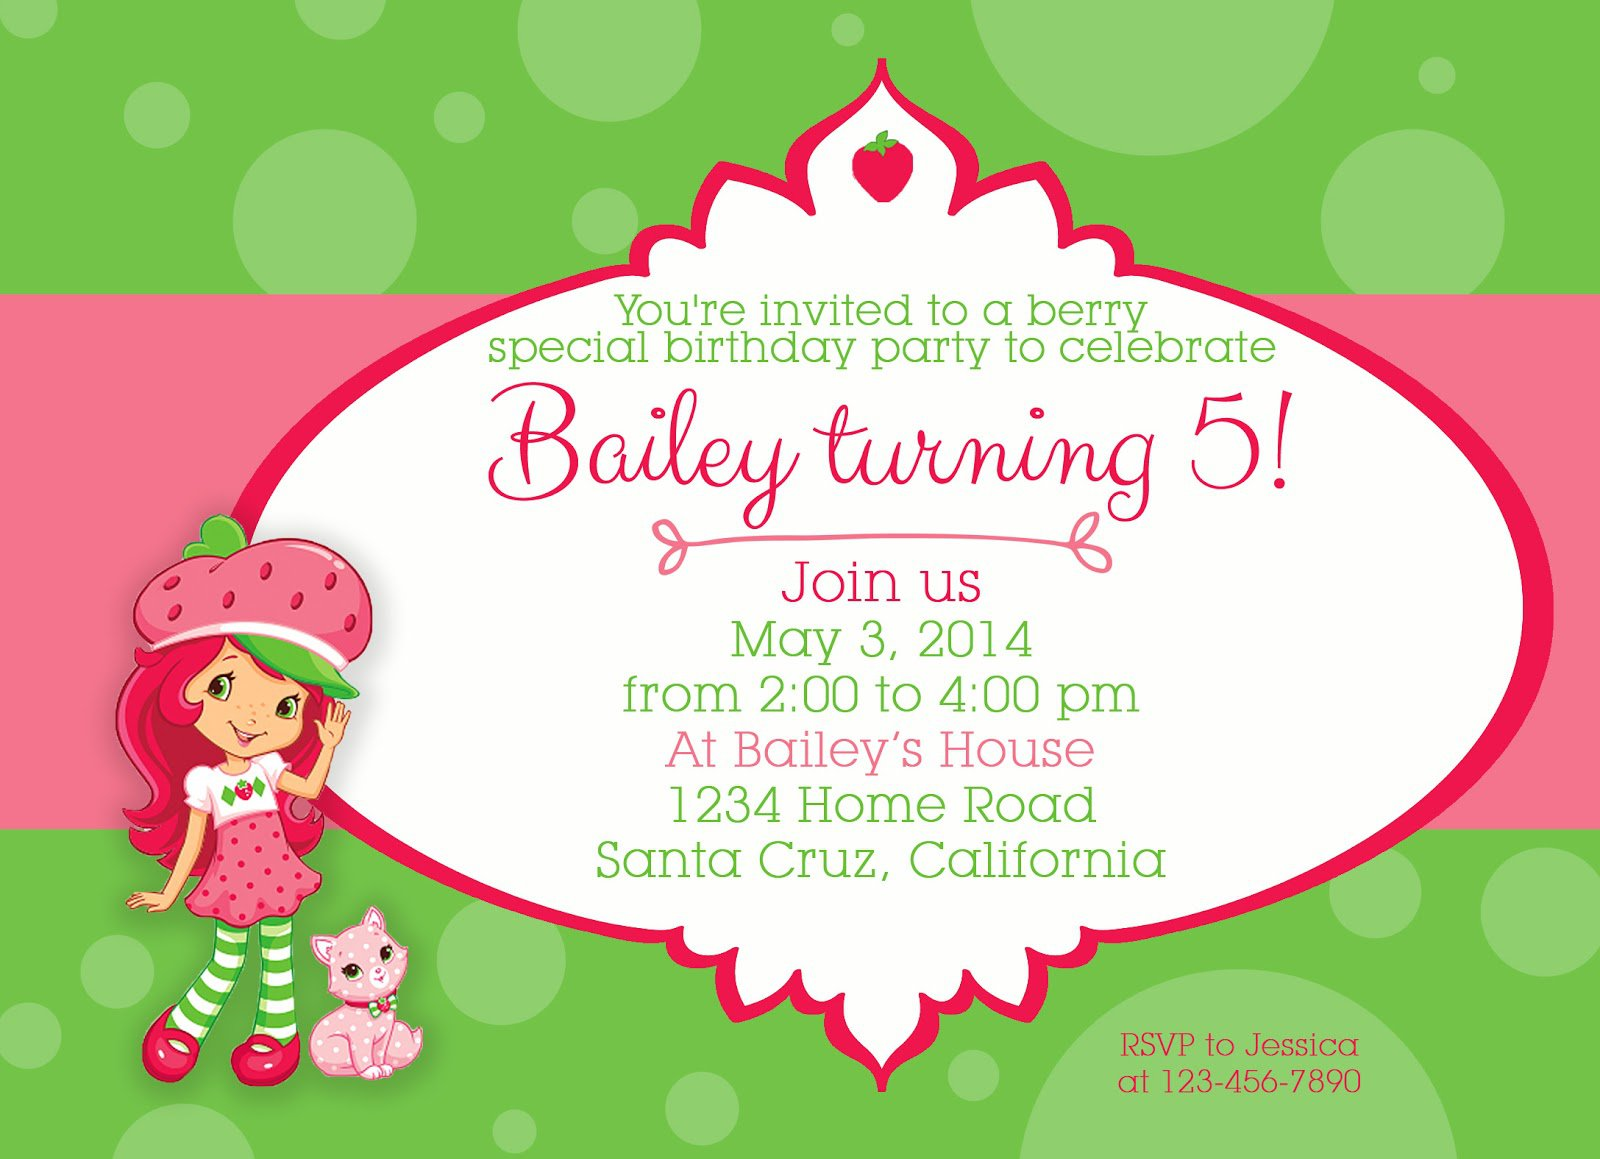 strawberry shortcake birthday invitations